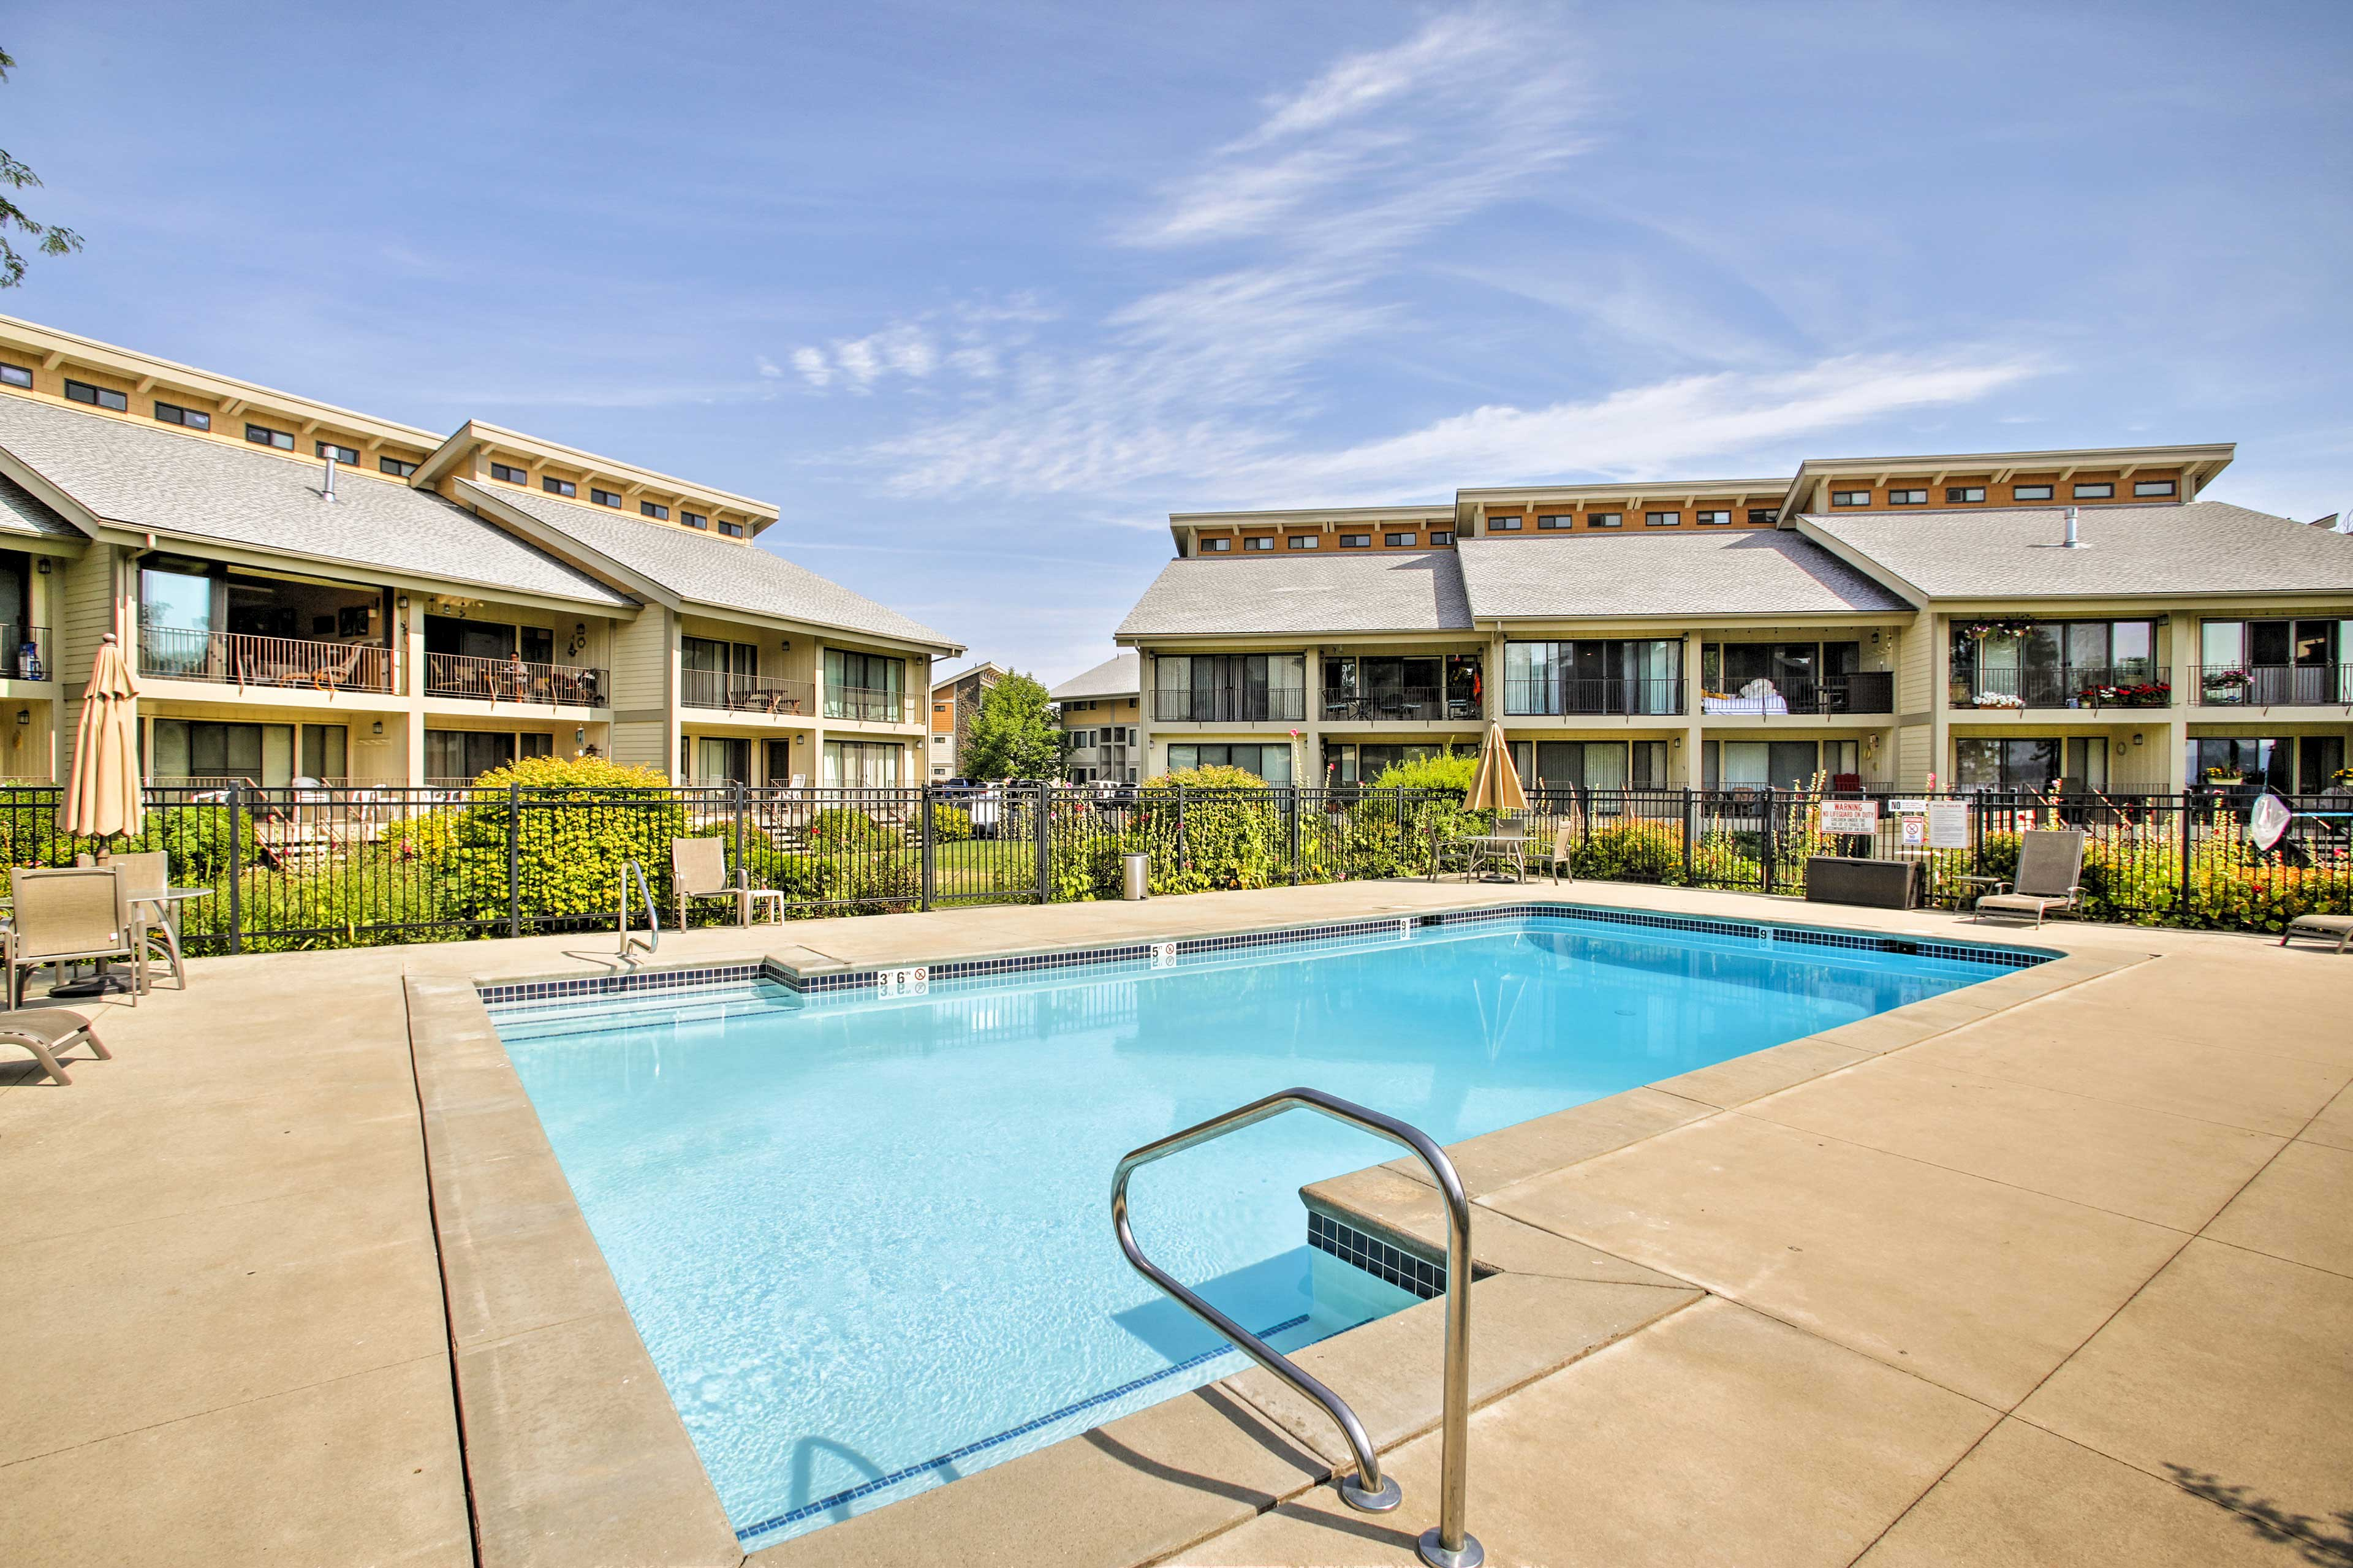 During summer, take advantage of the community amenities like 2 outdoor pools.